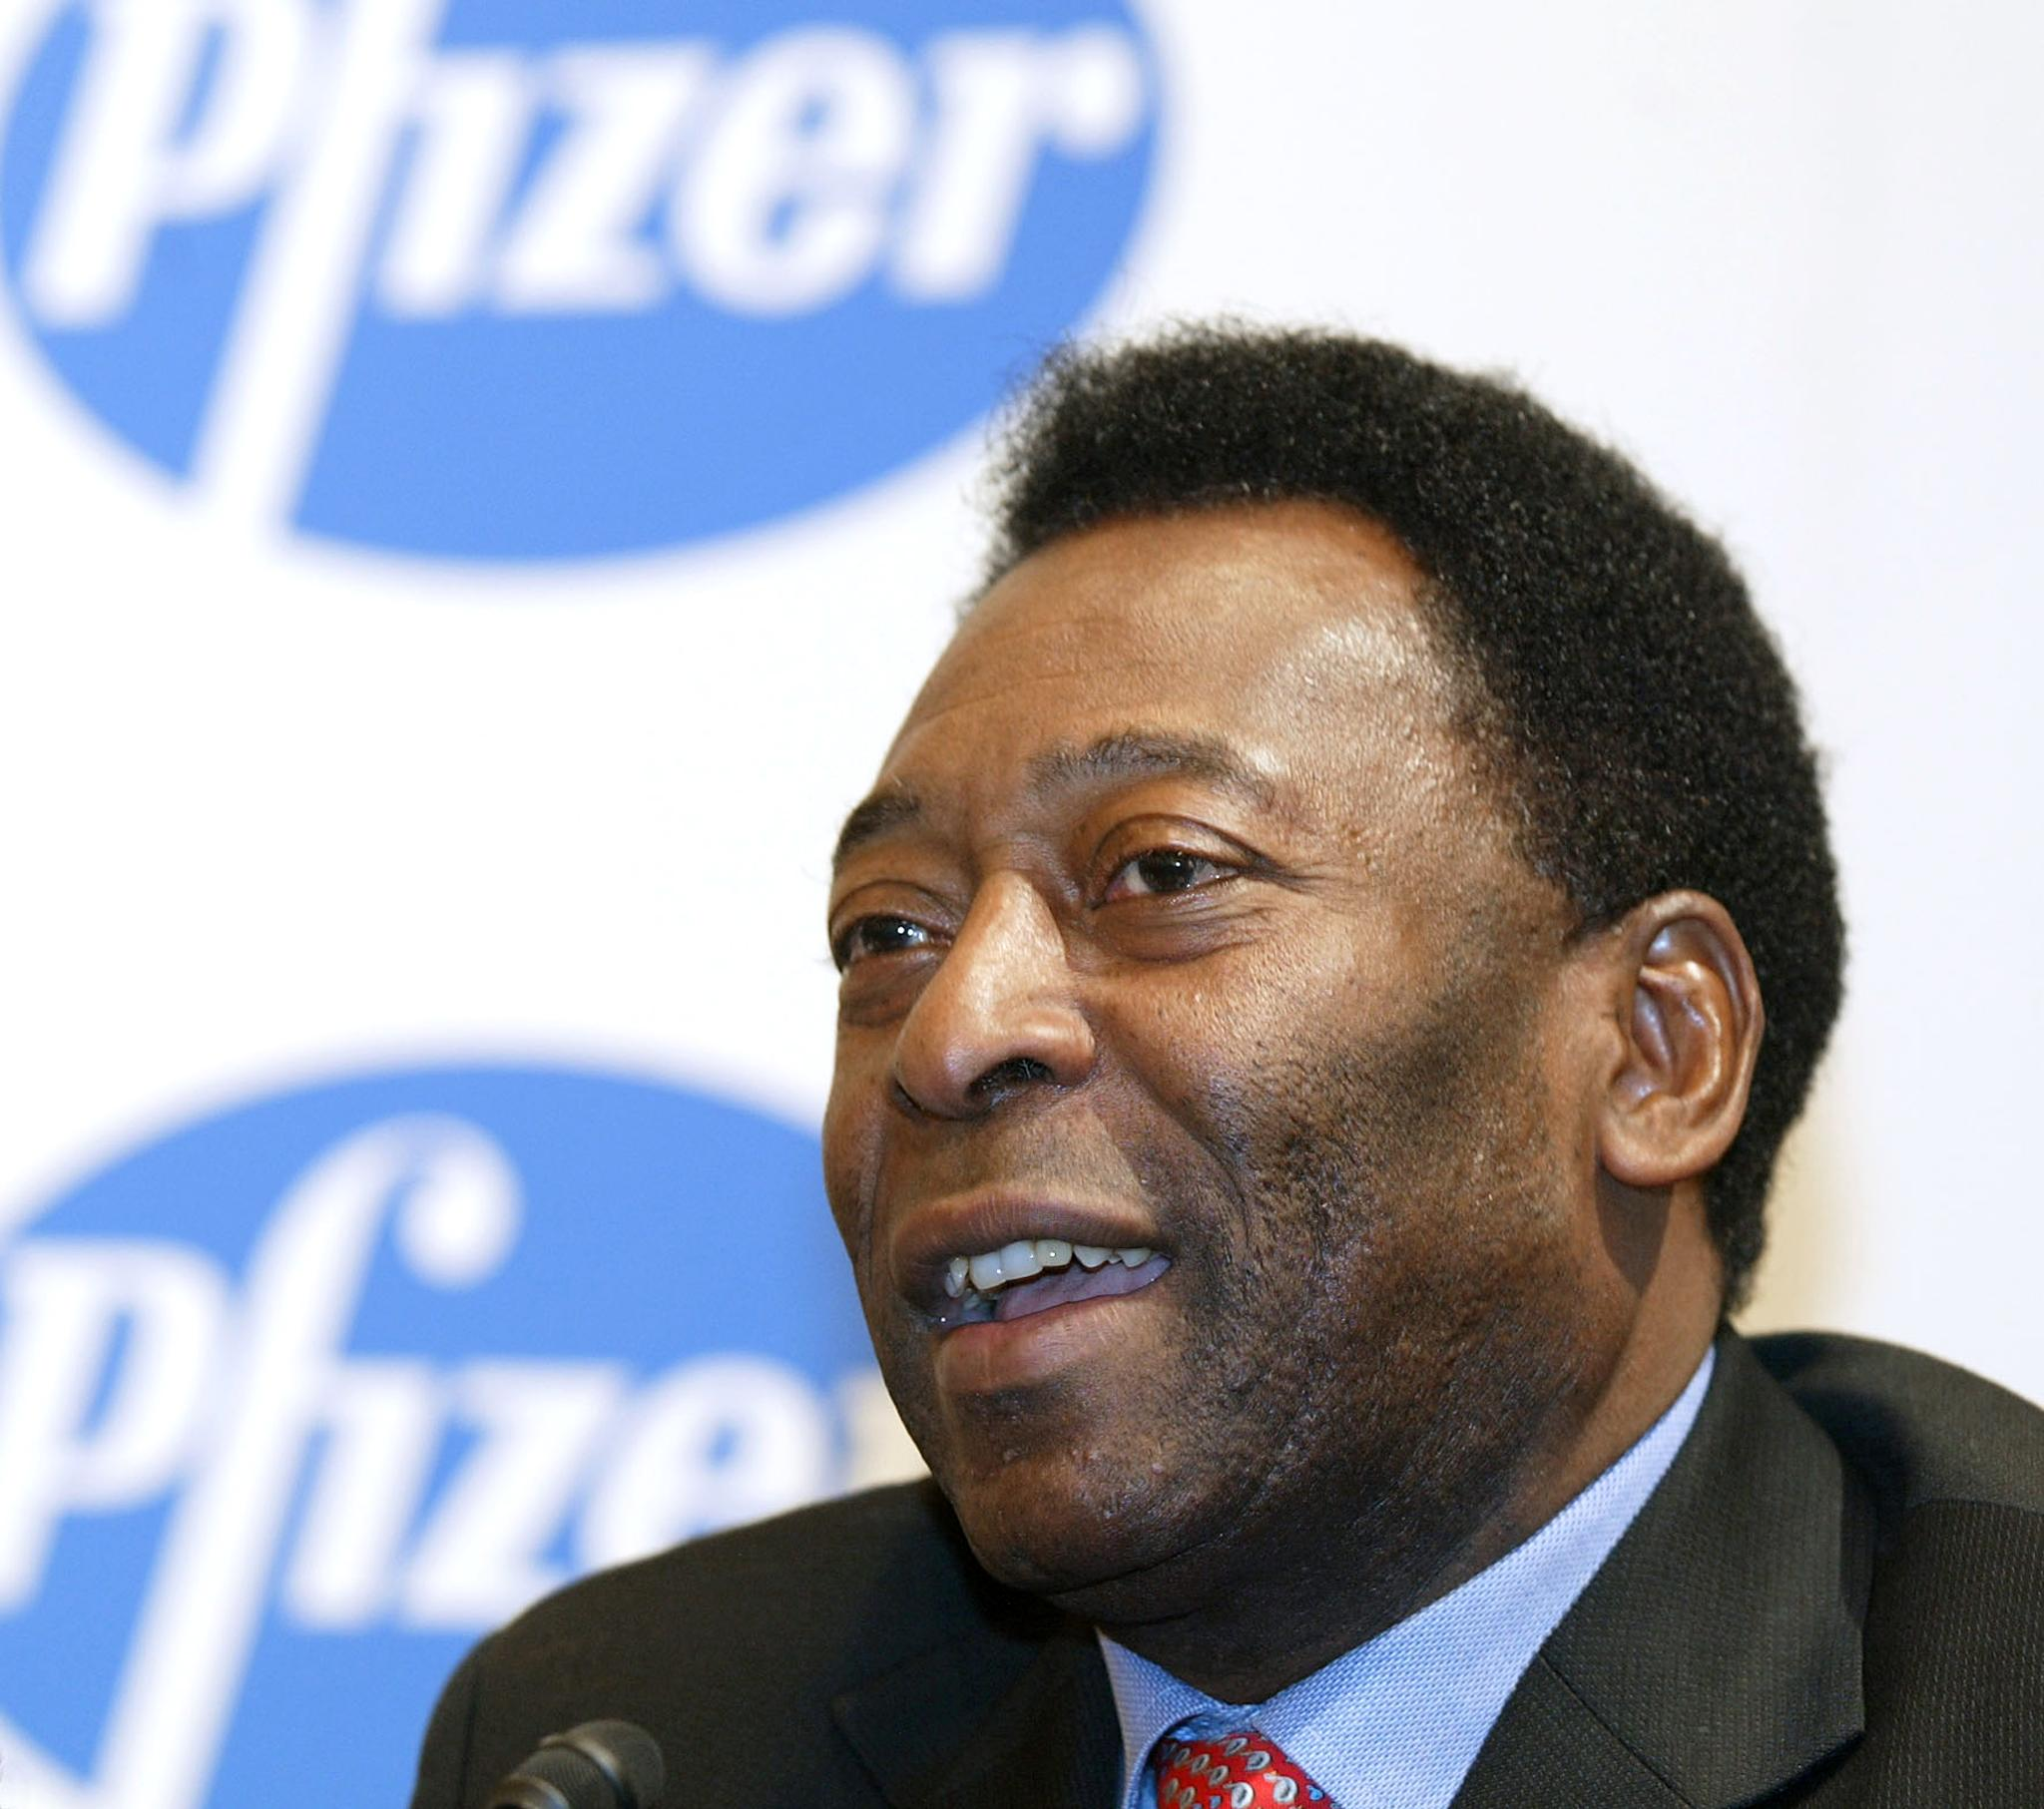 Soccer legend Pelé attends a 2002 news conference